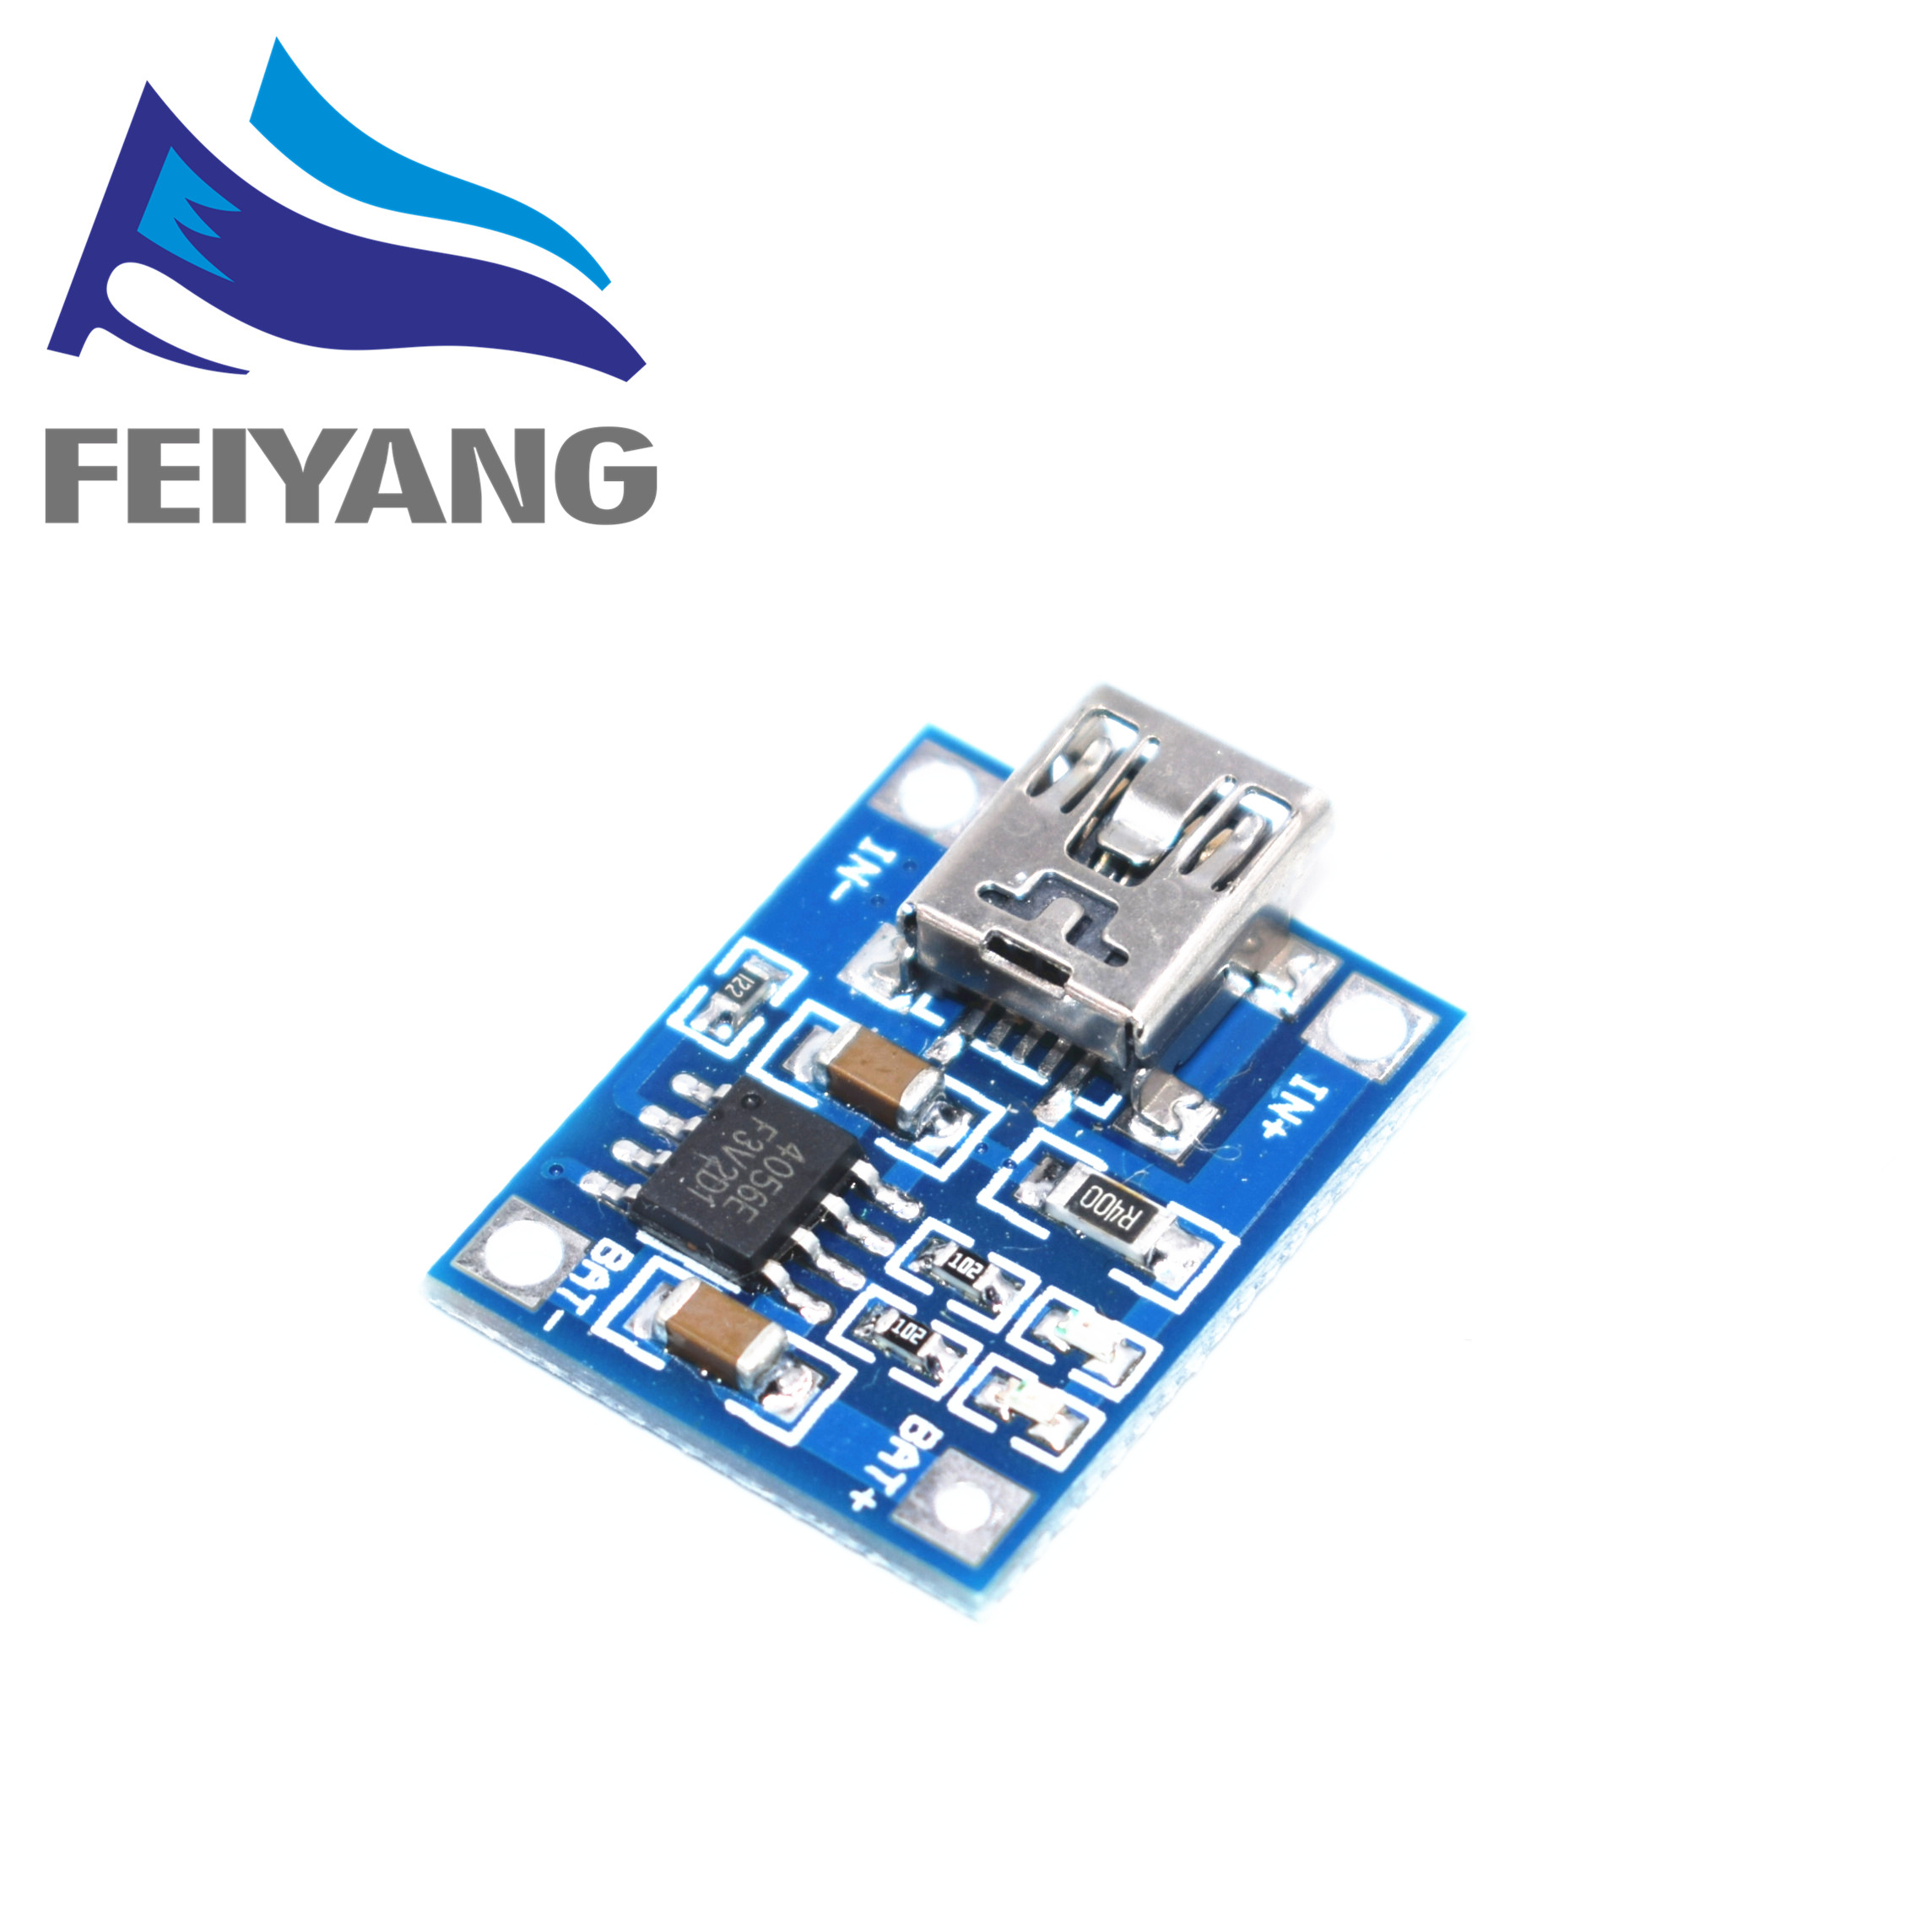 10PCS TP4056 1A Lipo Battery Charging Board Charger Module lithium battery DIY Mini USB Port